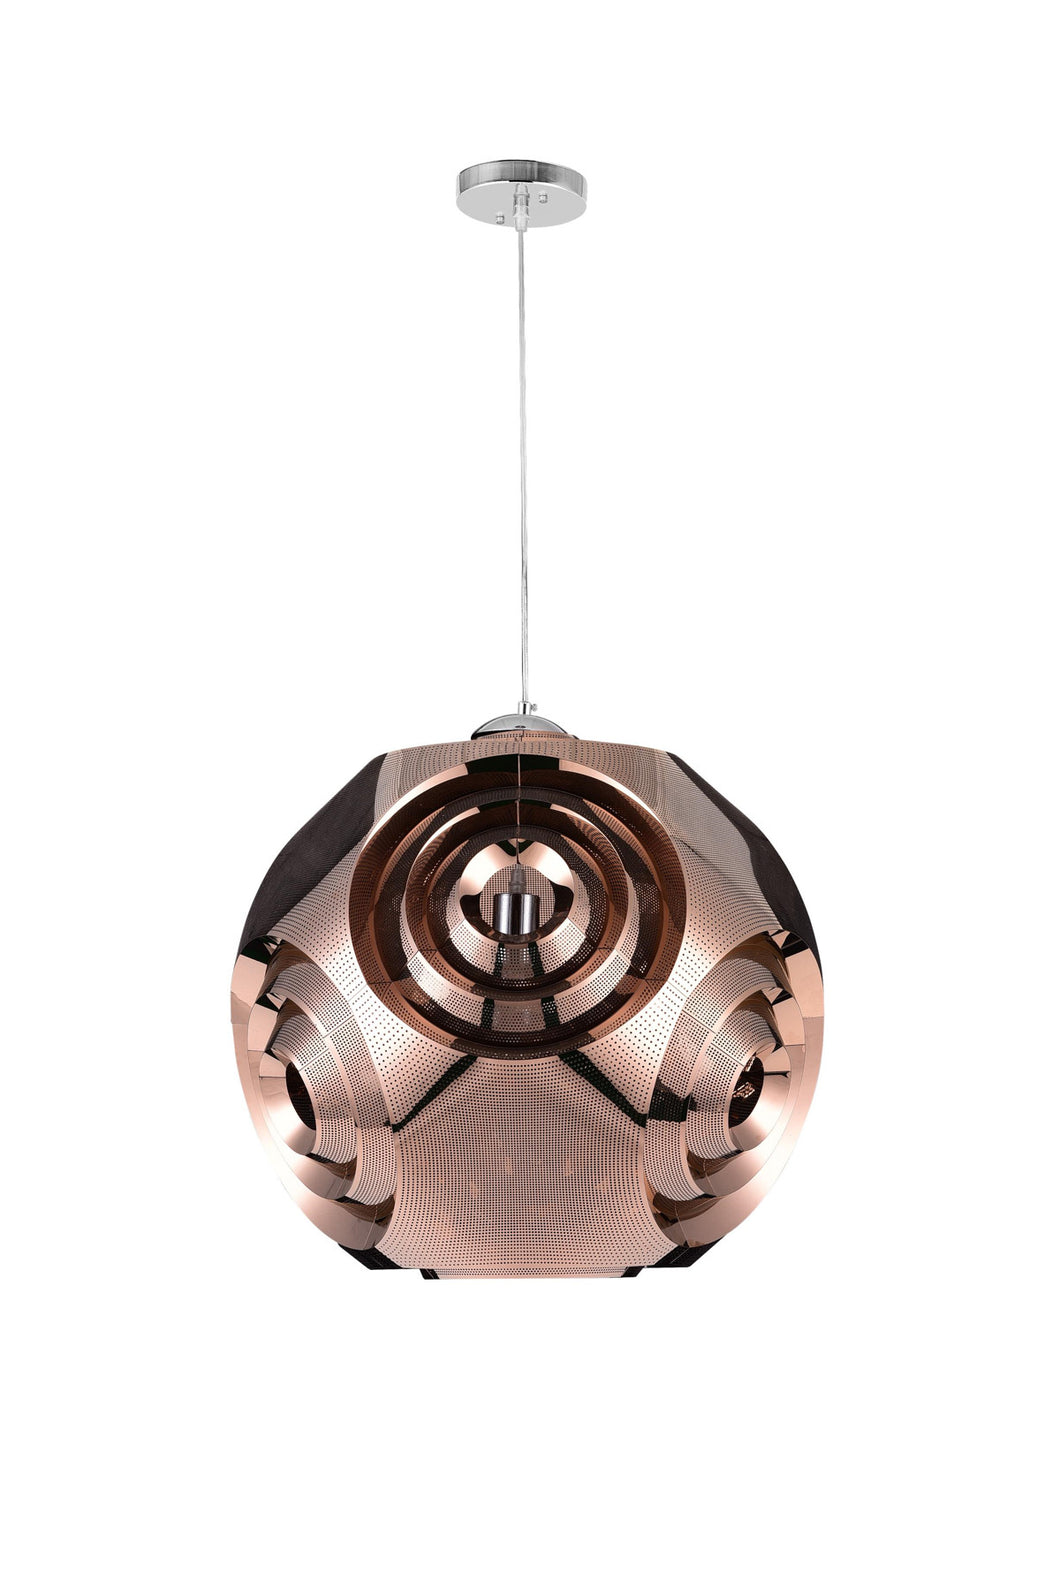 1 Light Pendant with Copper Finish